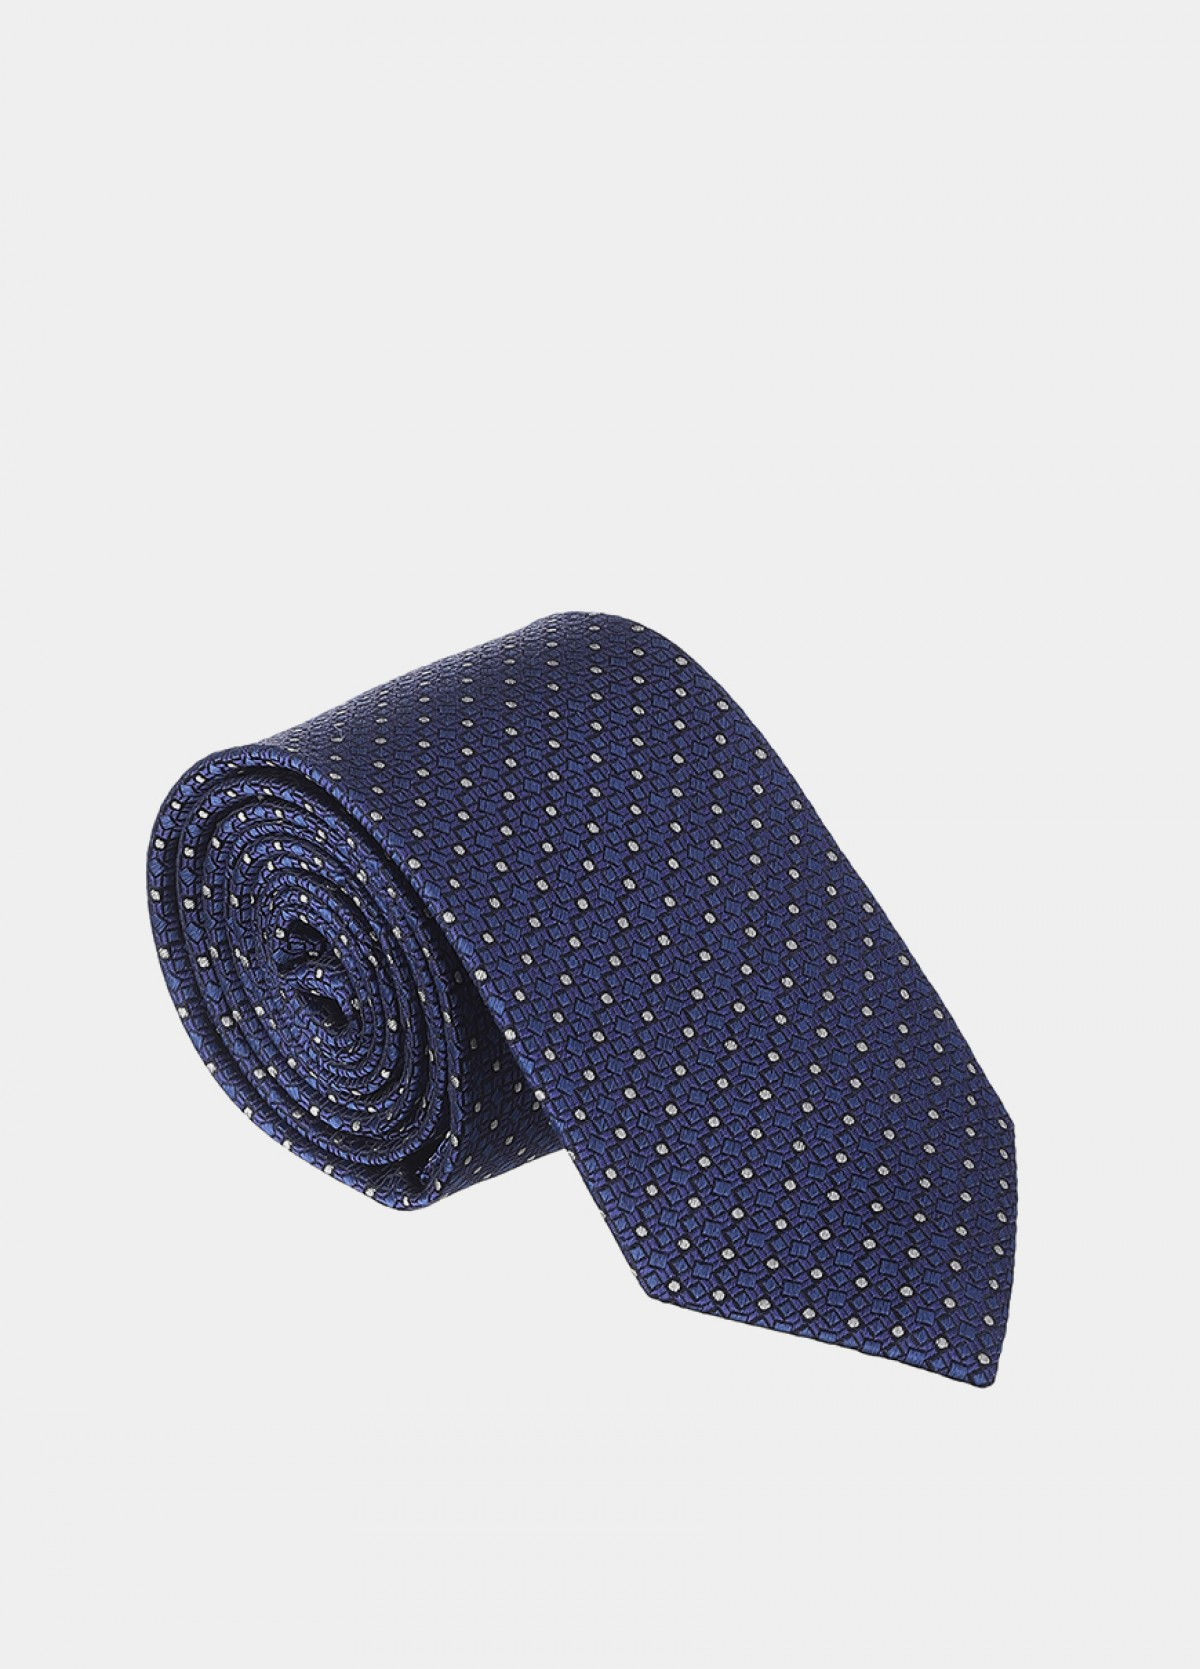 The Tie & Pocket Square Gift Set